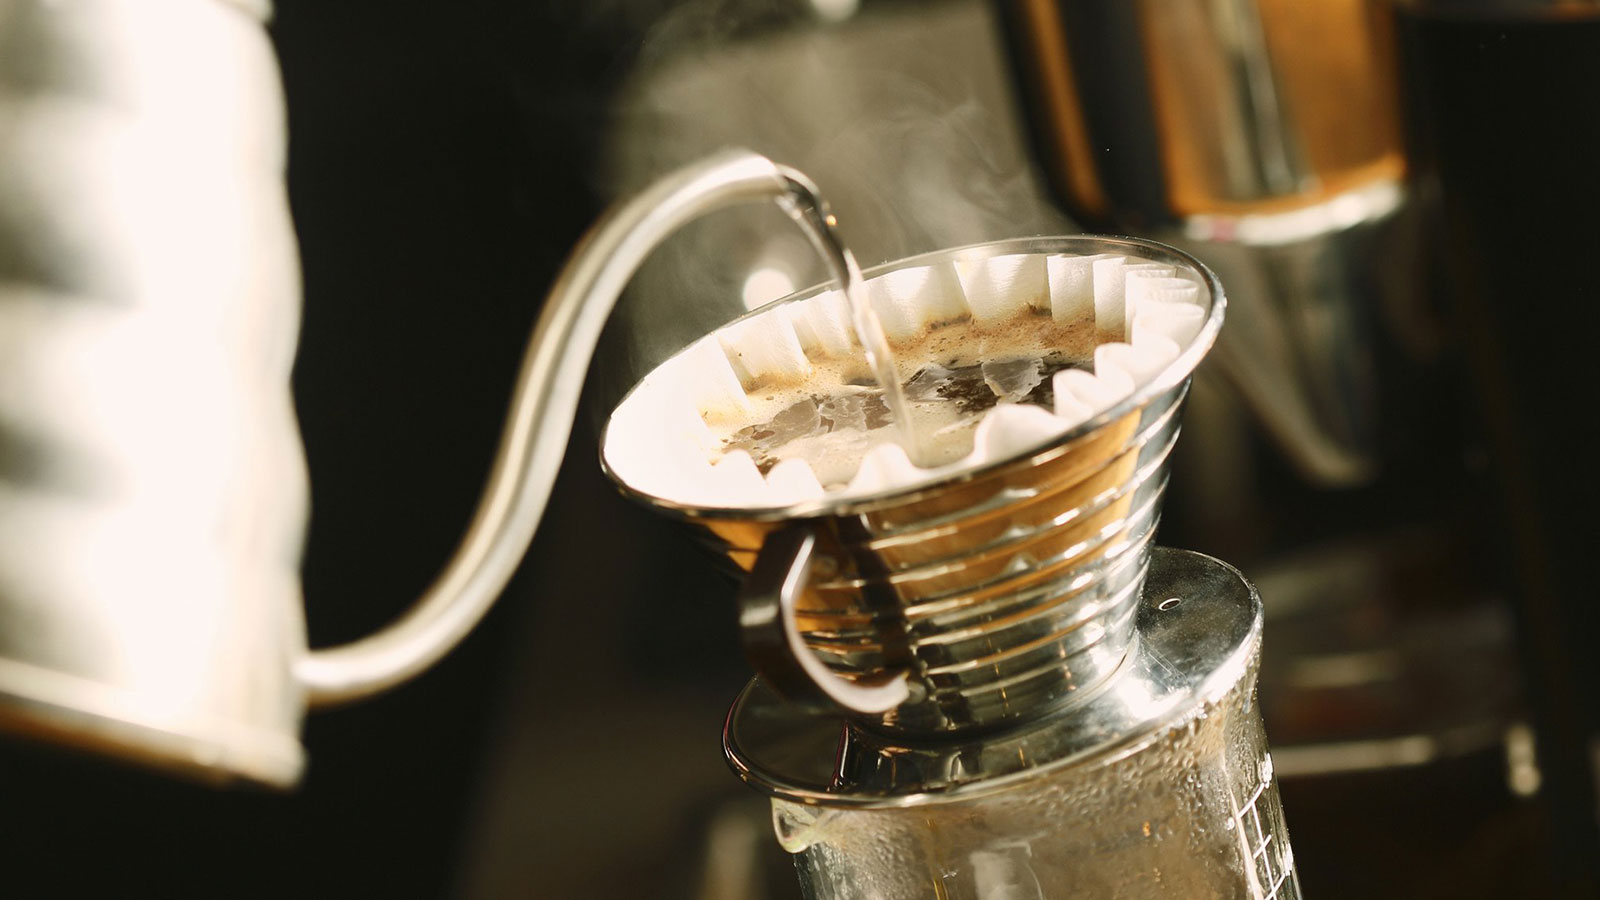 Pour Over Coffee: How To Make The Best Cup Of Coffee